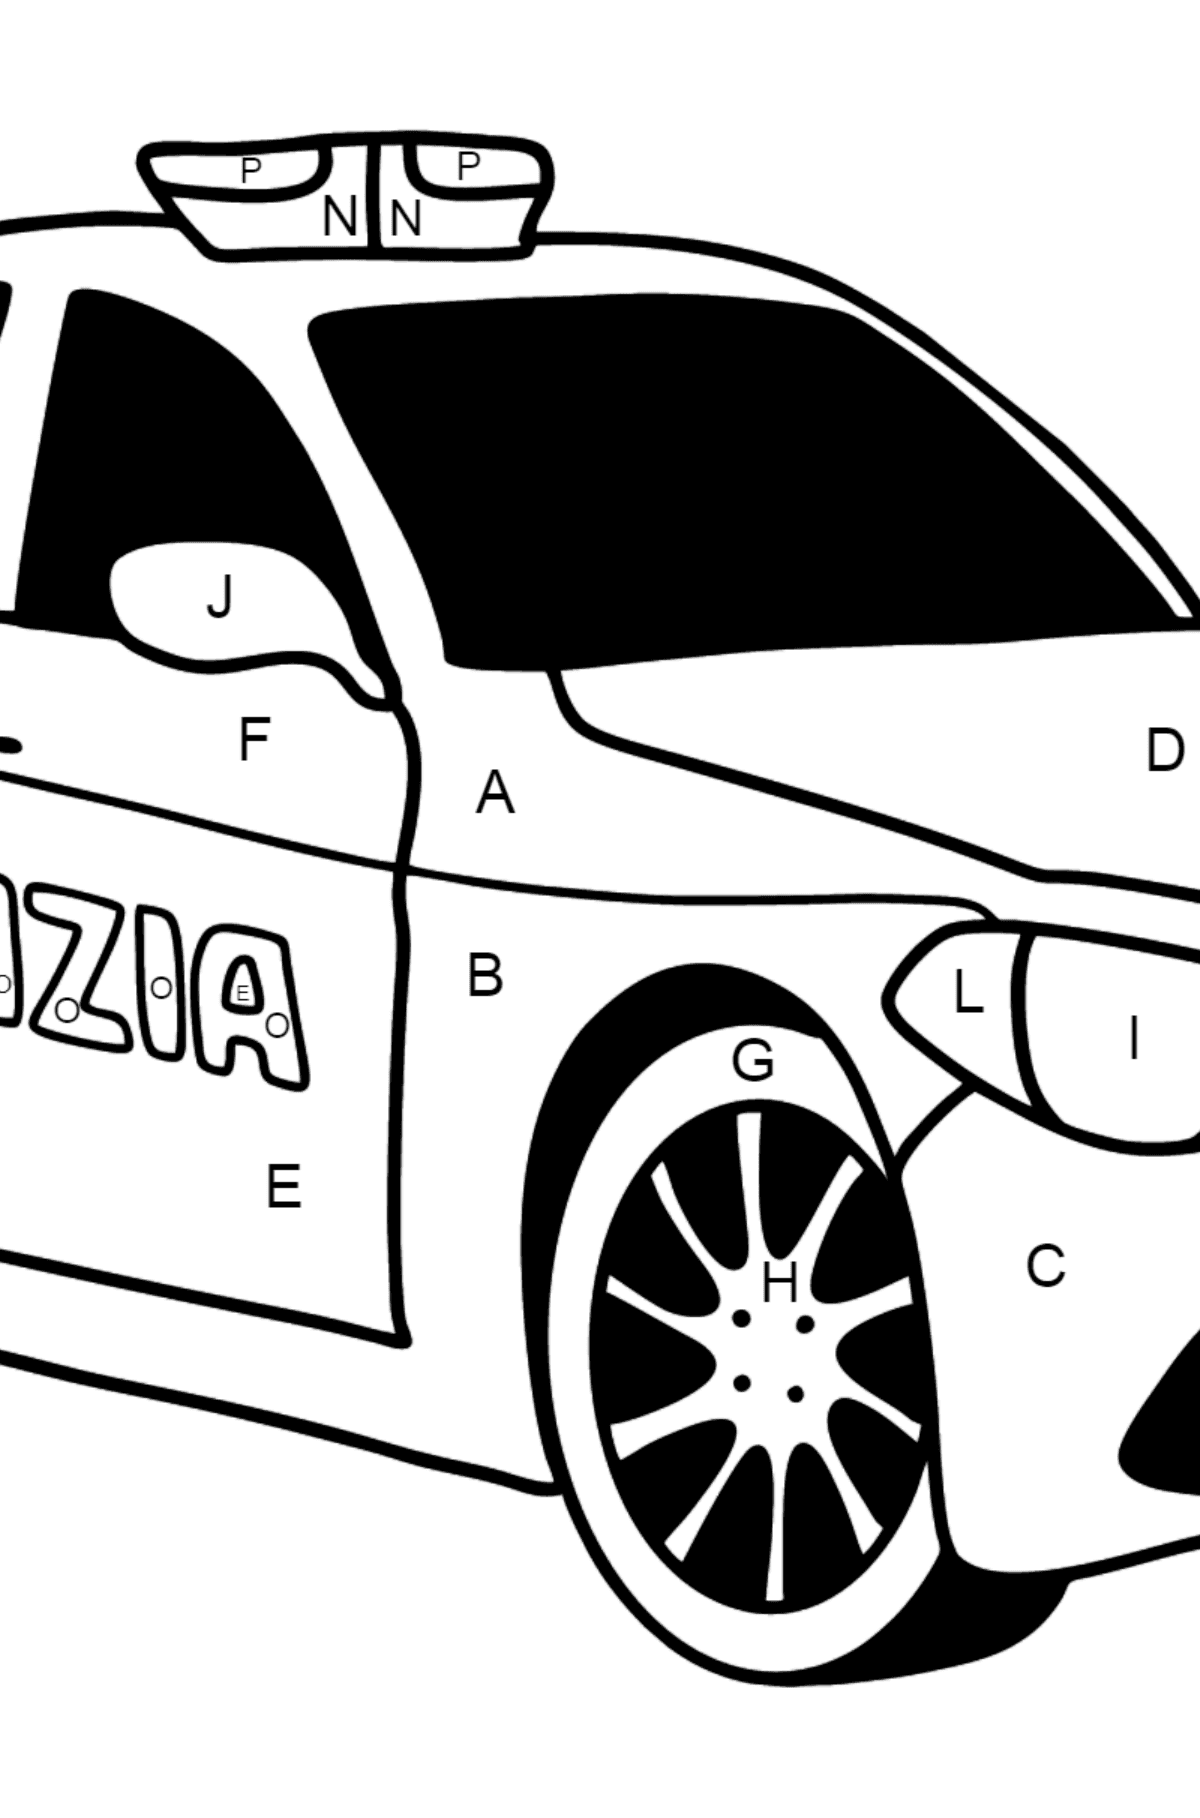 Police Car in Italy coloring page - Coloring by Letters for Kids